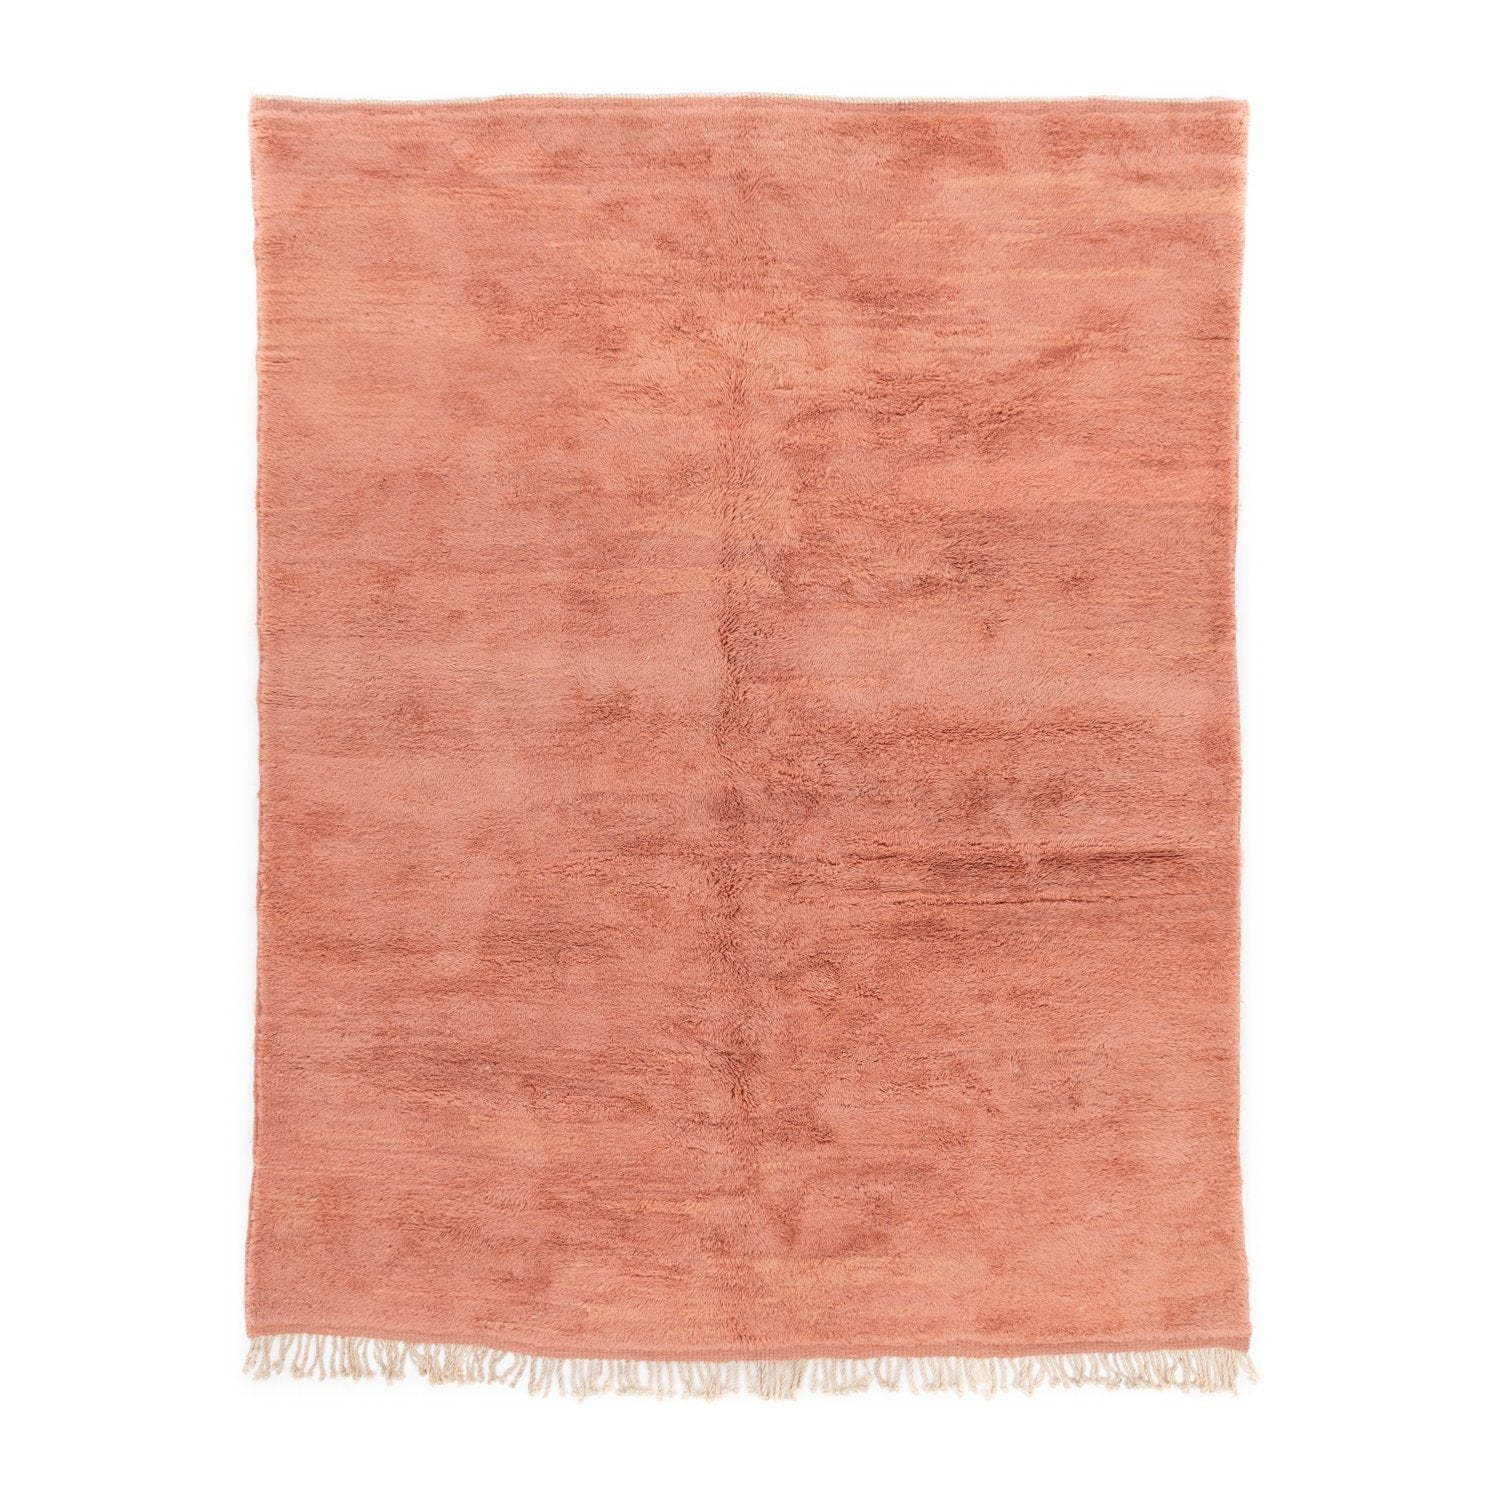 Luxury Mrirt rug 8.1 x 10.4 ft / 246 x 318 cm - Mrirt Rug